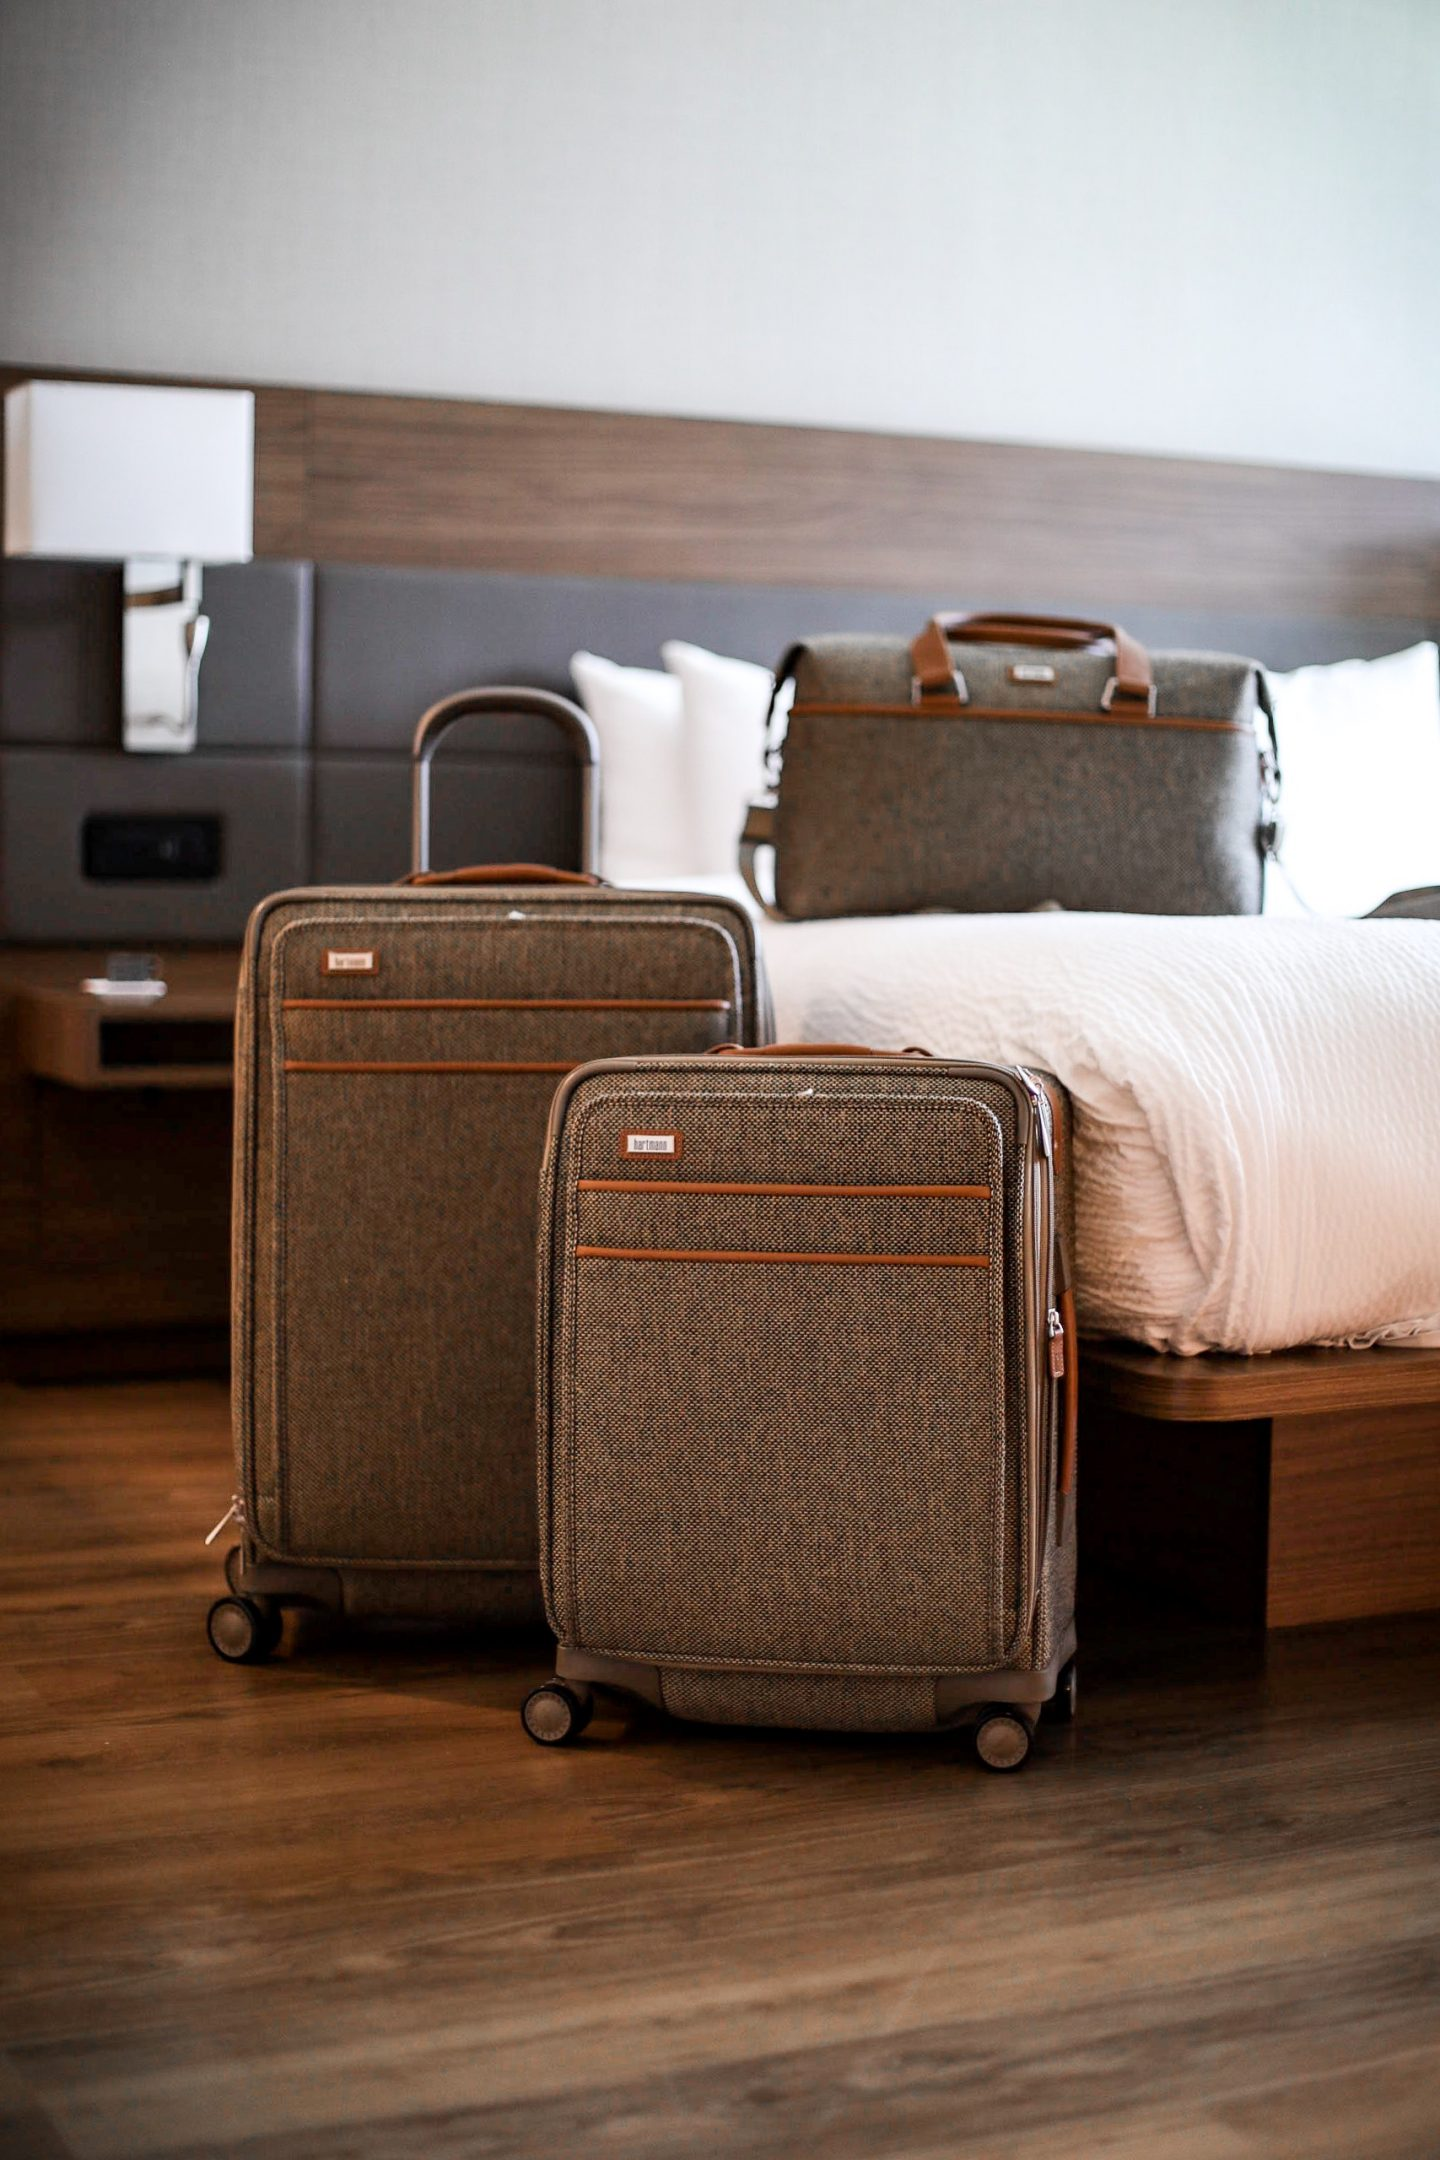 packing tips using Hartmann luggage